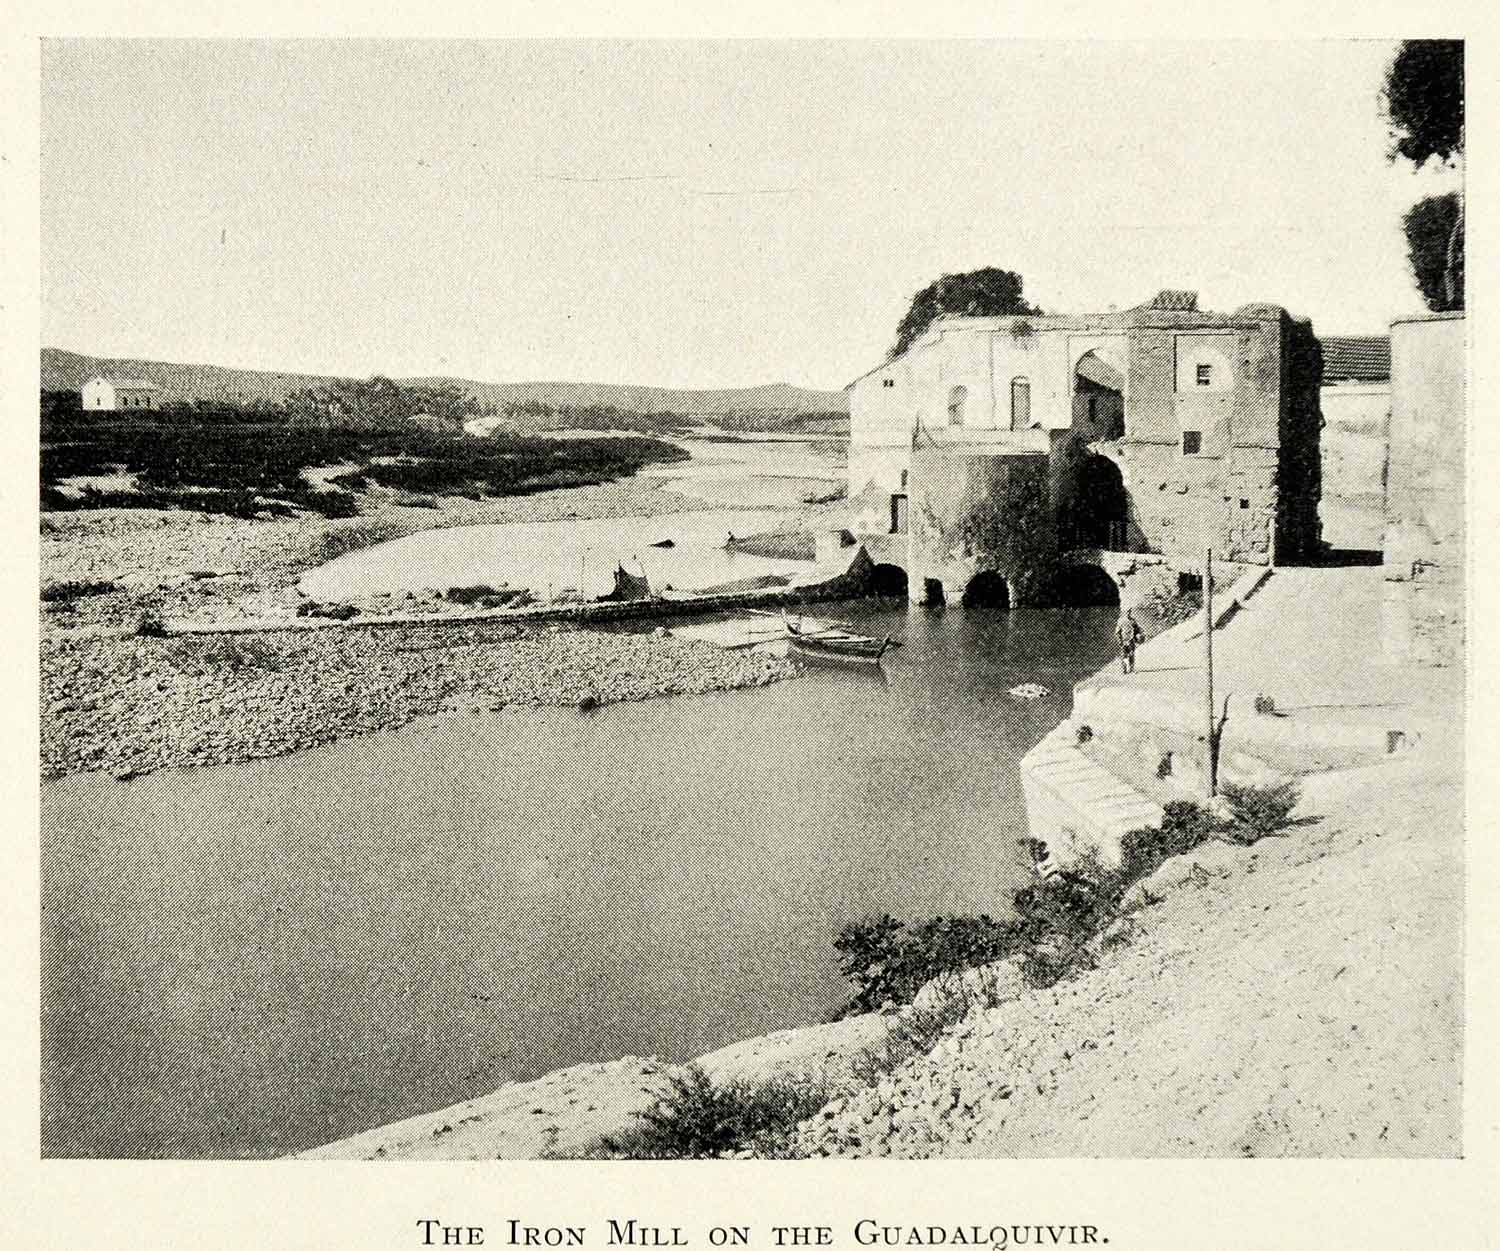 1907 Print Cordova Andalusia Spain Iron Mill City Guadalquivir River XGZ4